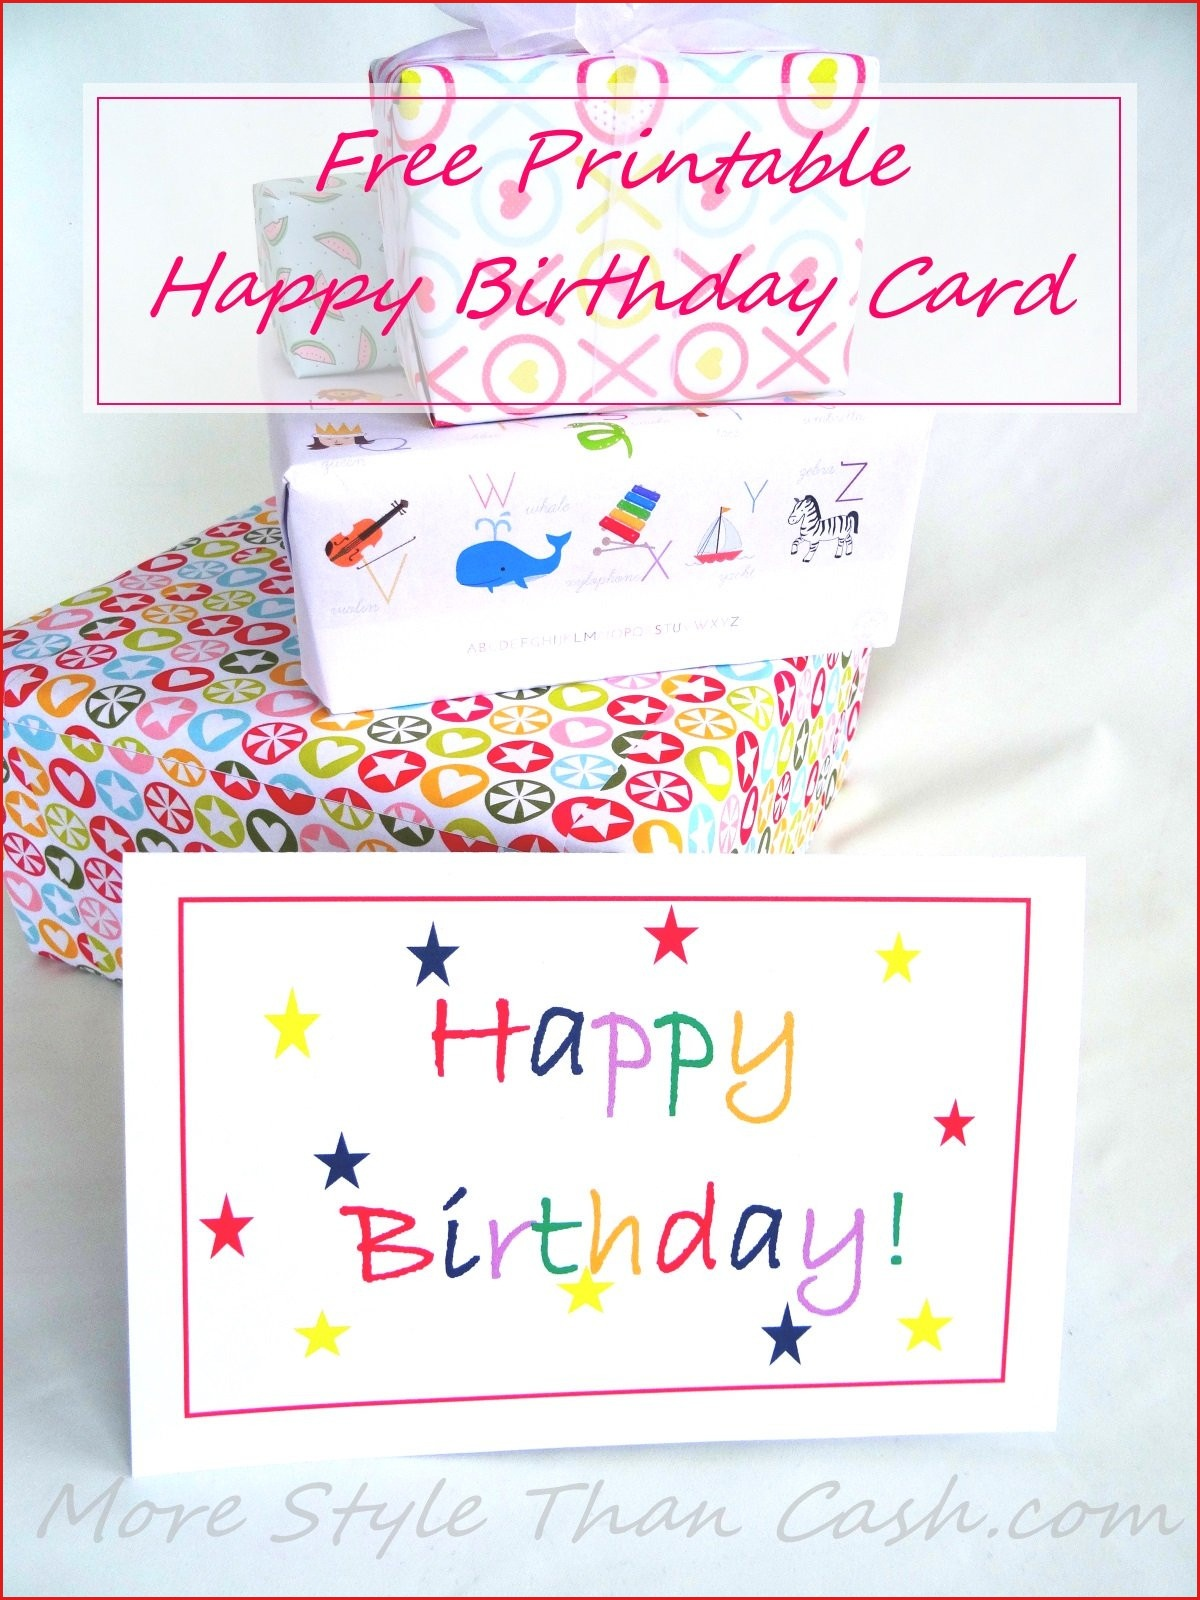 Free Printable Birthday Card Print Birthday Cards Online : Lenq - Free Printable Happy Birthday Cards Online